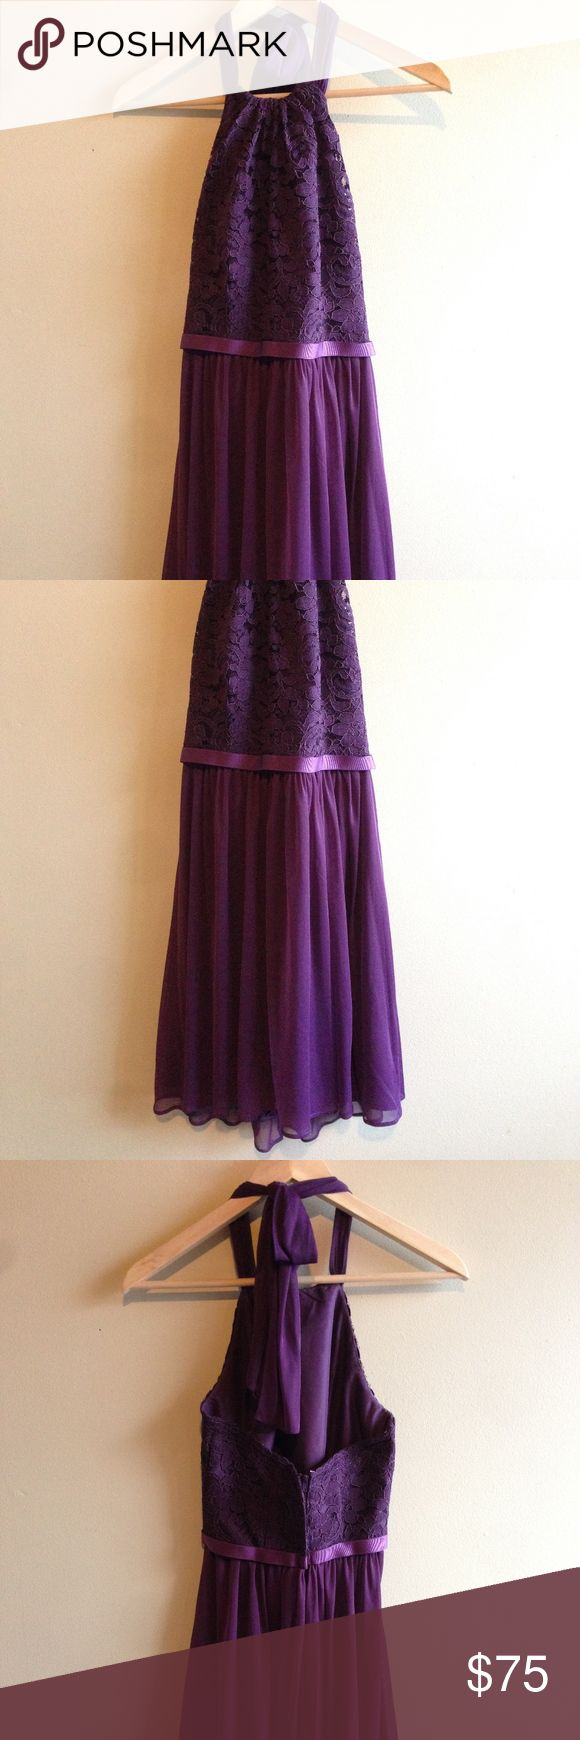 """David's Bridal Short Lace Halter Dress Plum Sz 0 Beautiful plum short lace halter dress from David's Bridal. The size tag has been removed, but I'm pretty sure this is a size 0, model F17020 (http://www.davidsbridal.com/Product_short-halter-lace-and-mesh-dress-f17020). The only difference is that the skirt lining the mesh part of the dress has been altered so that it is approximately 1"""" shorter than the bottom. The dress from top of lace measures 31 1/2"""" long, 14"""" across the chest.  From a…"""